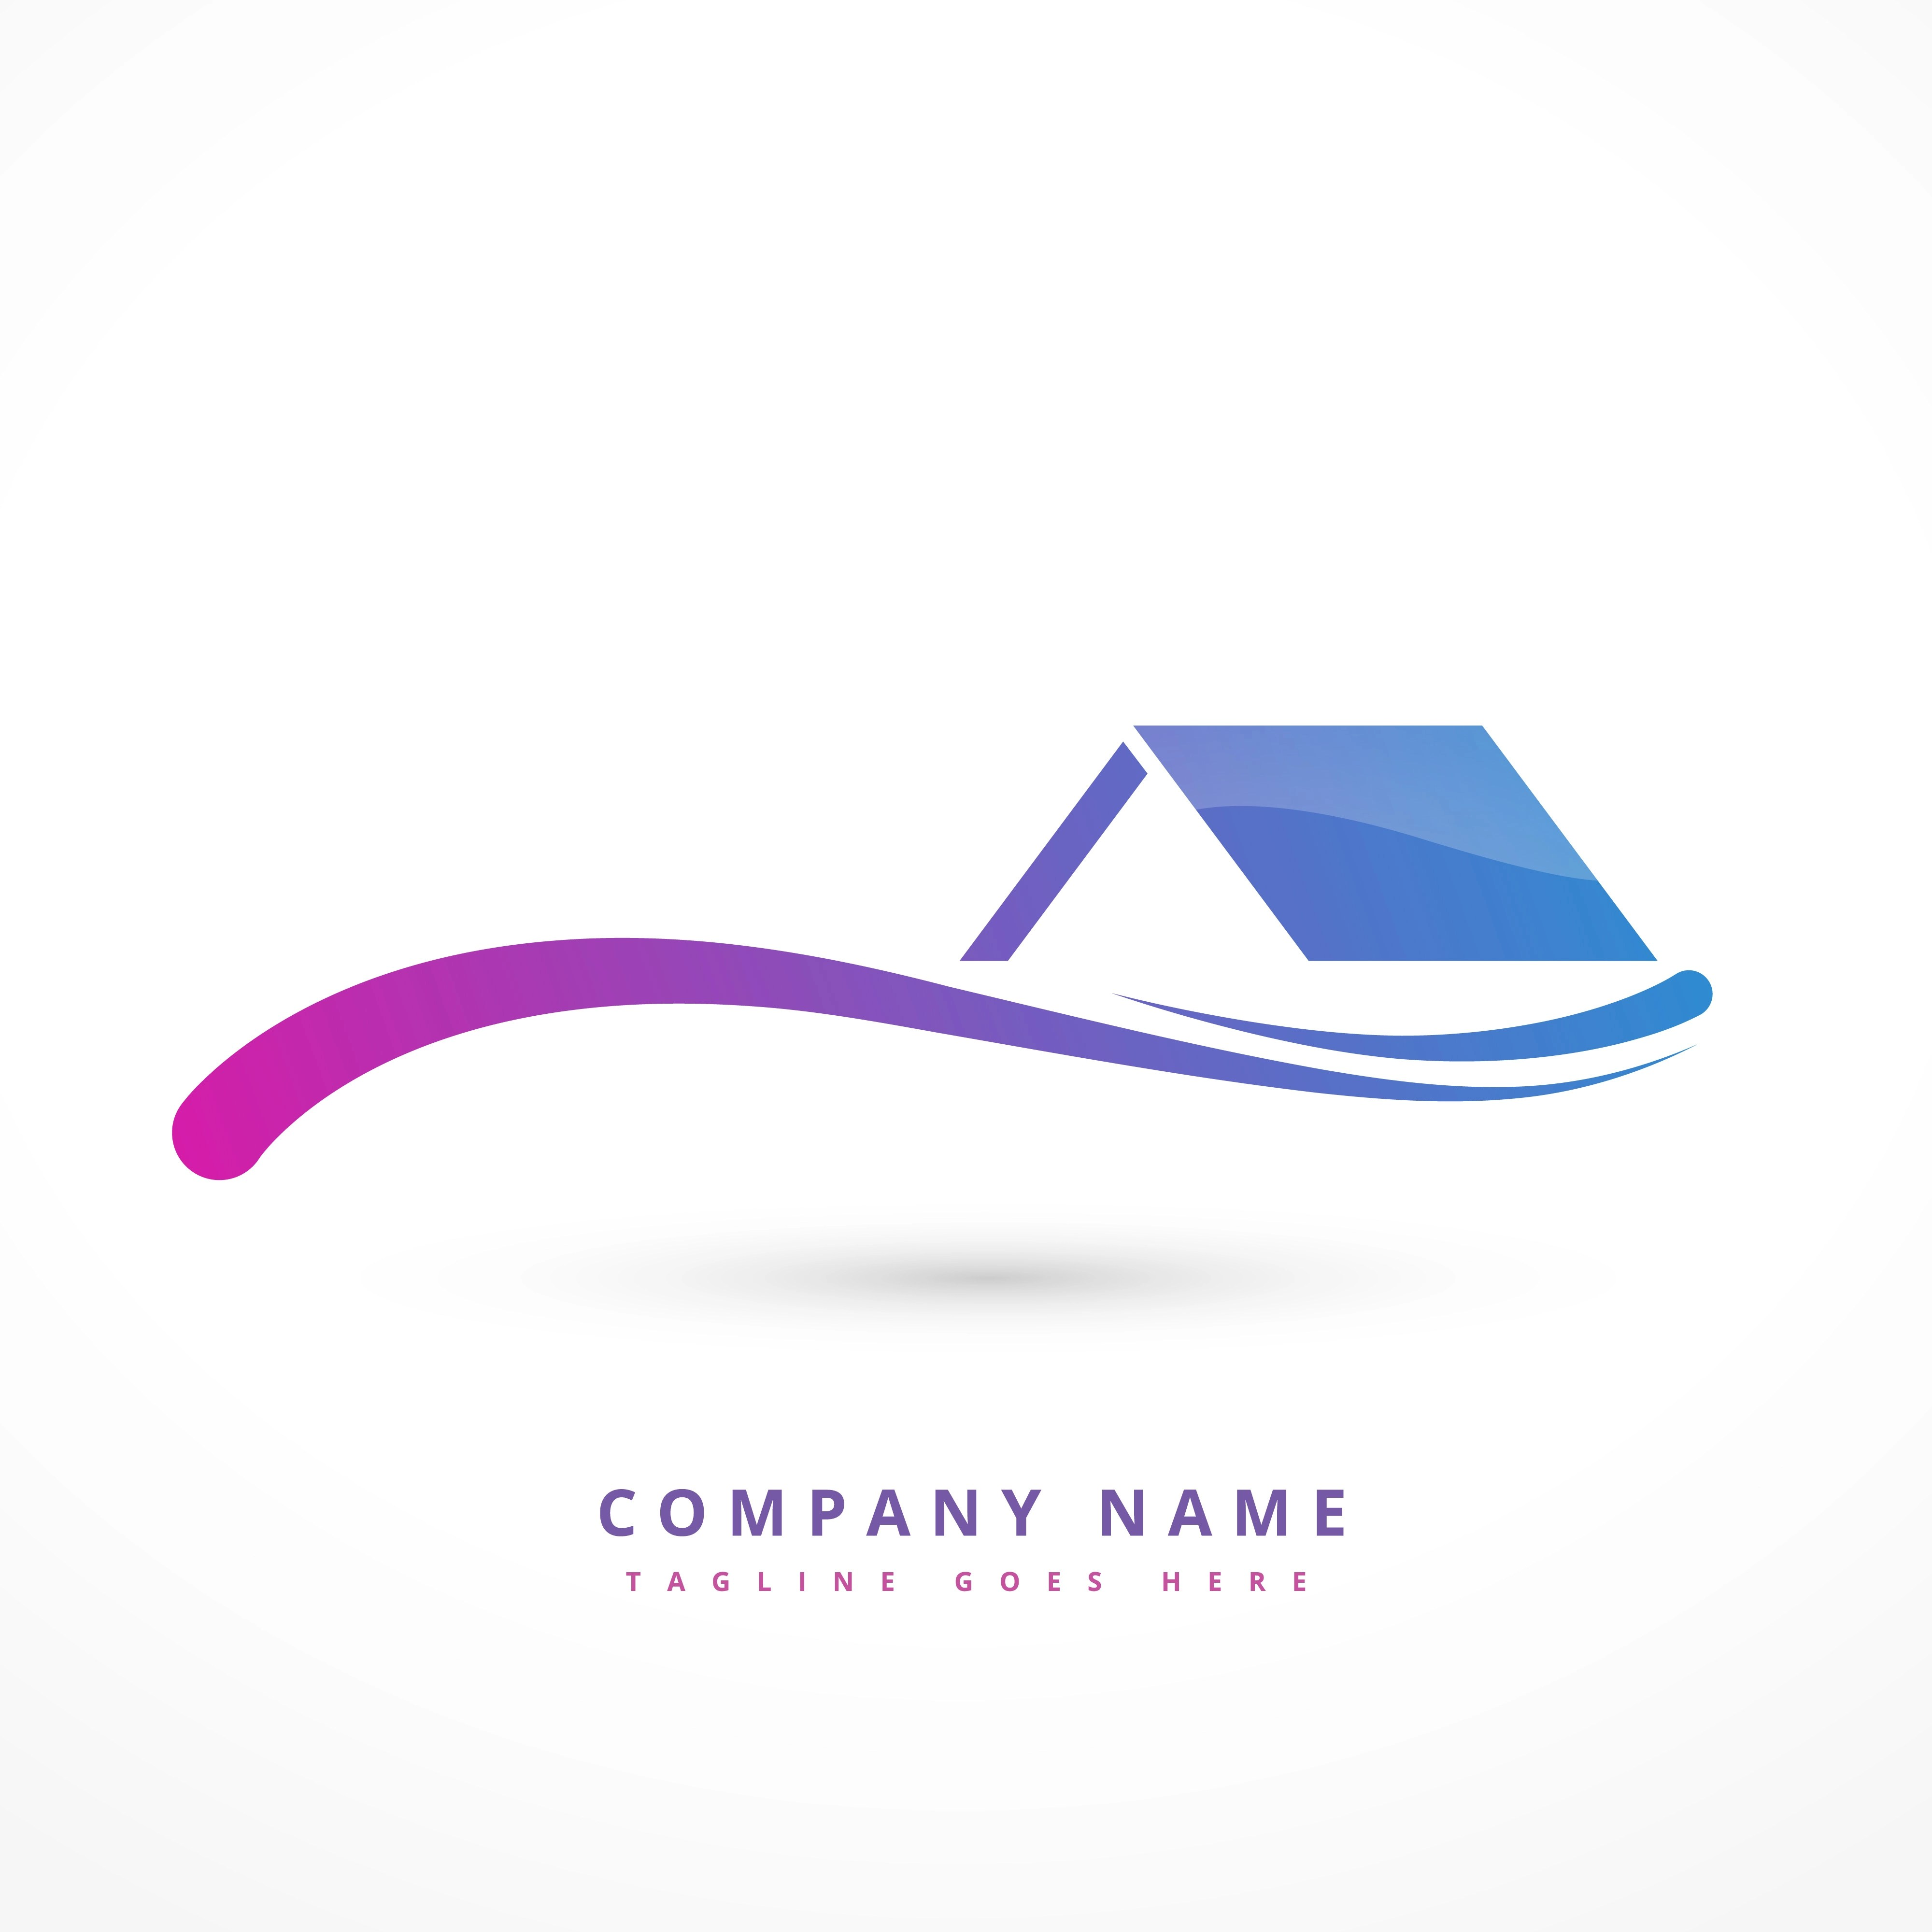 house or home company logo design illustration  Download Free Vector Art Stock Graphics  Images